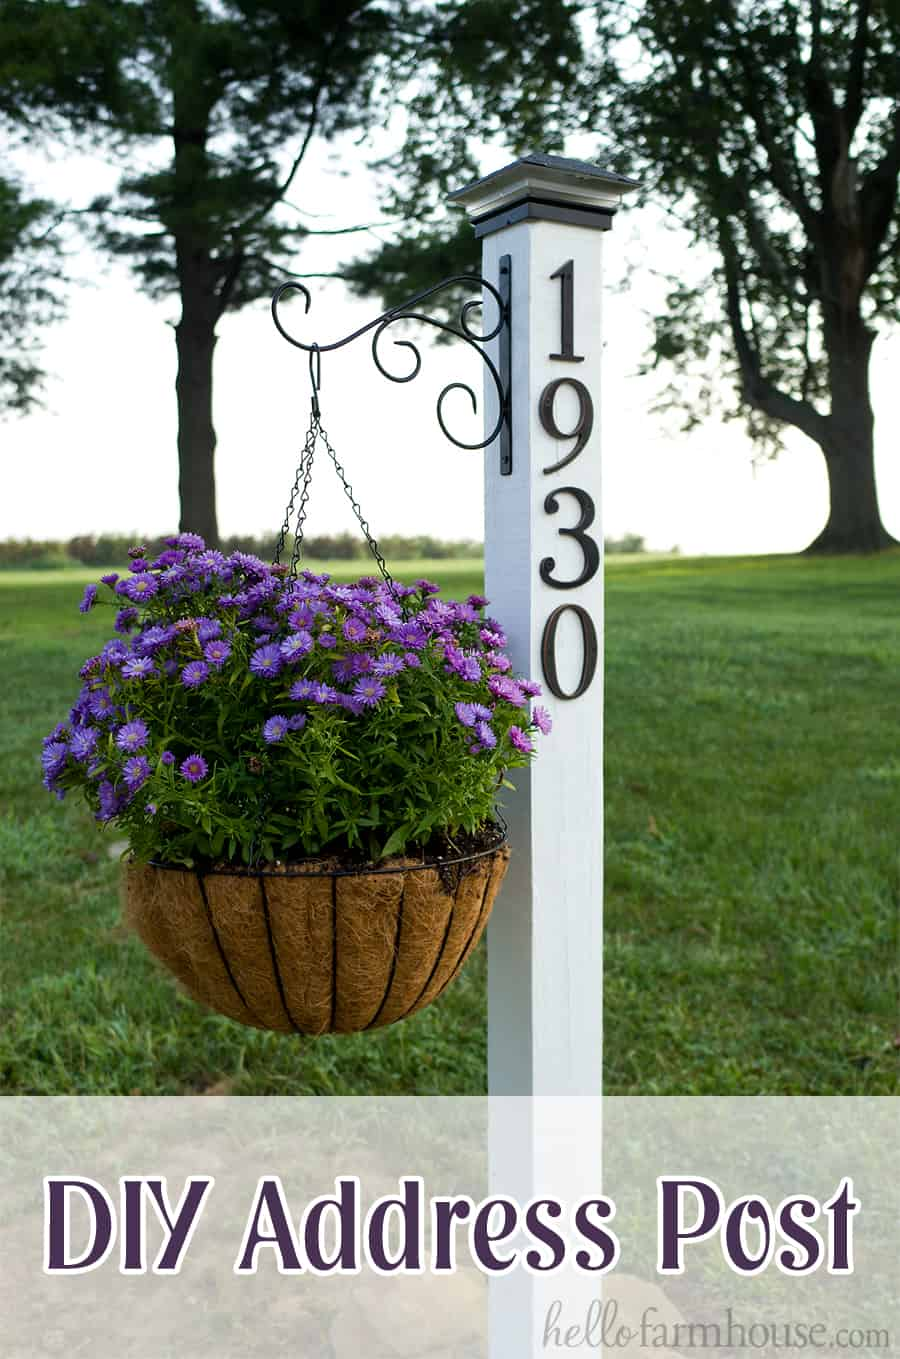 Diy address post and hnaging planter